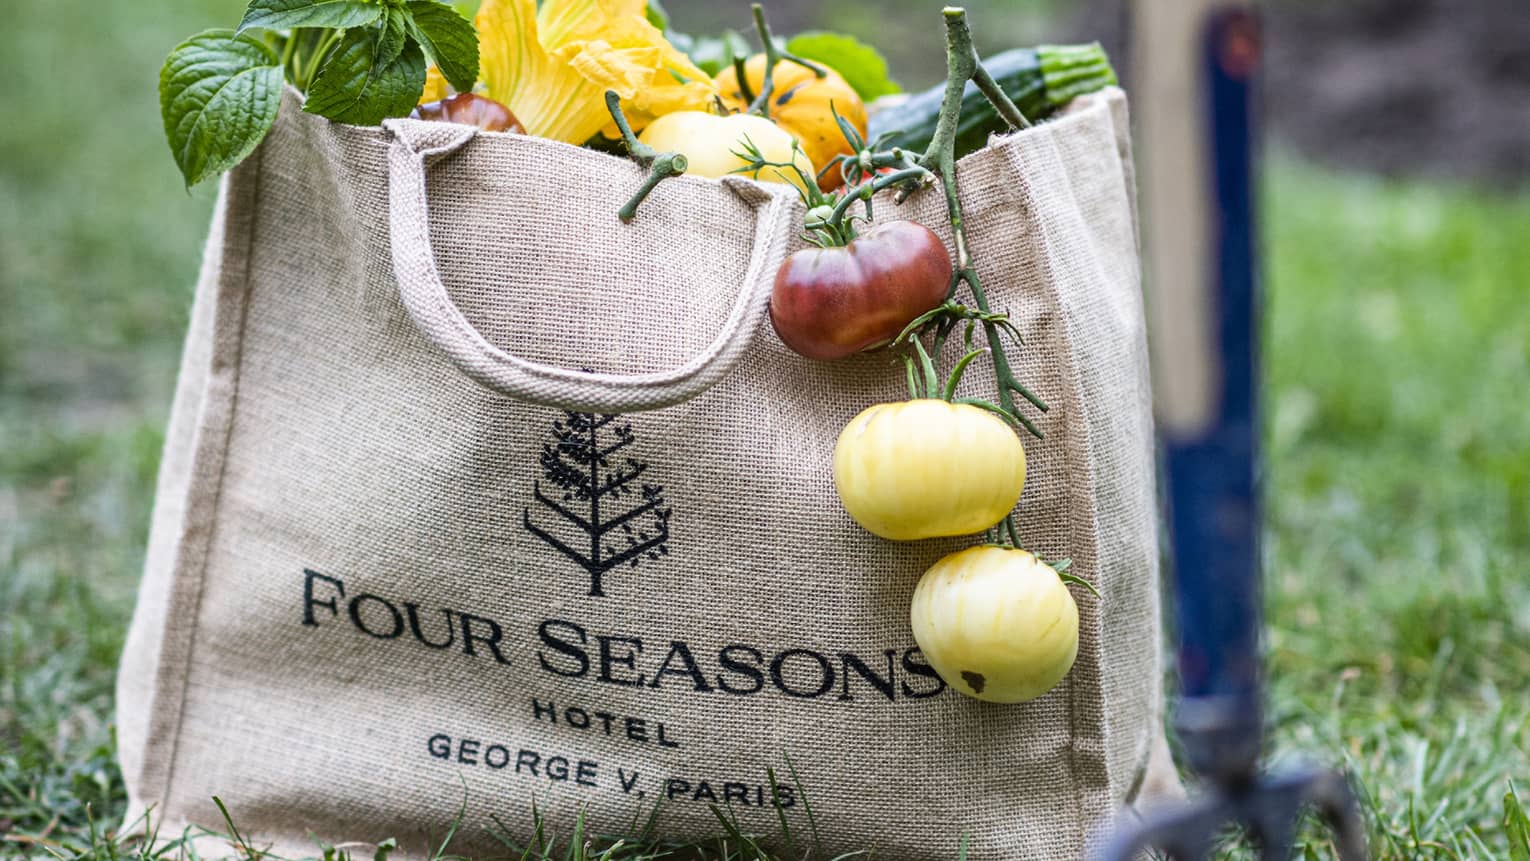 vegetables hang out of a burlap four seasons bag as it sits on the ground